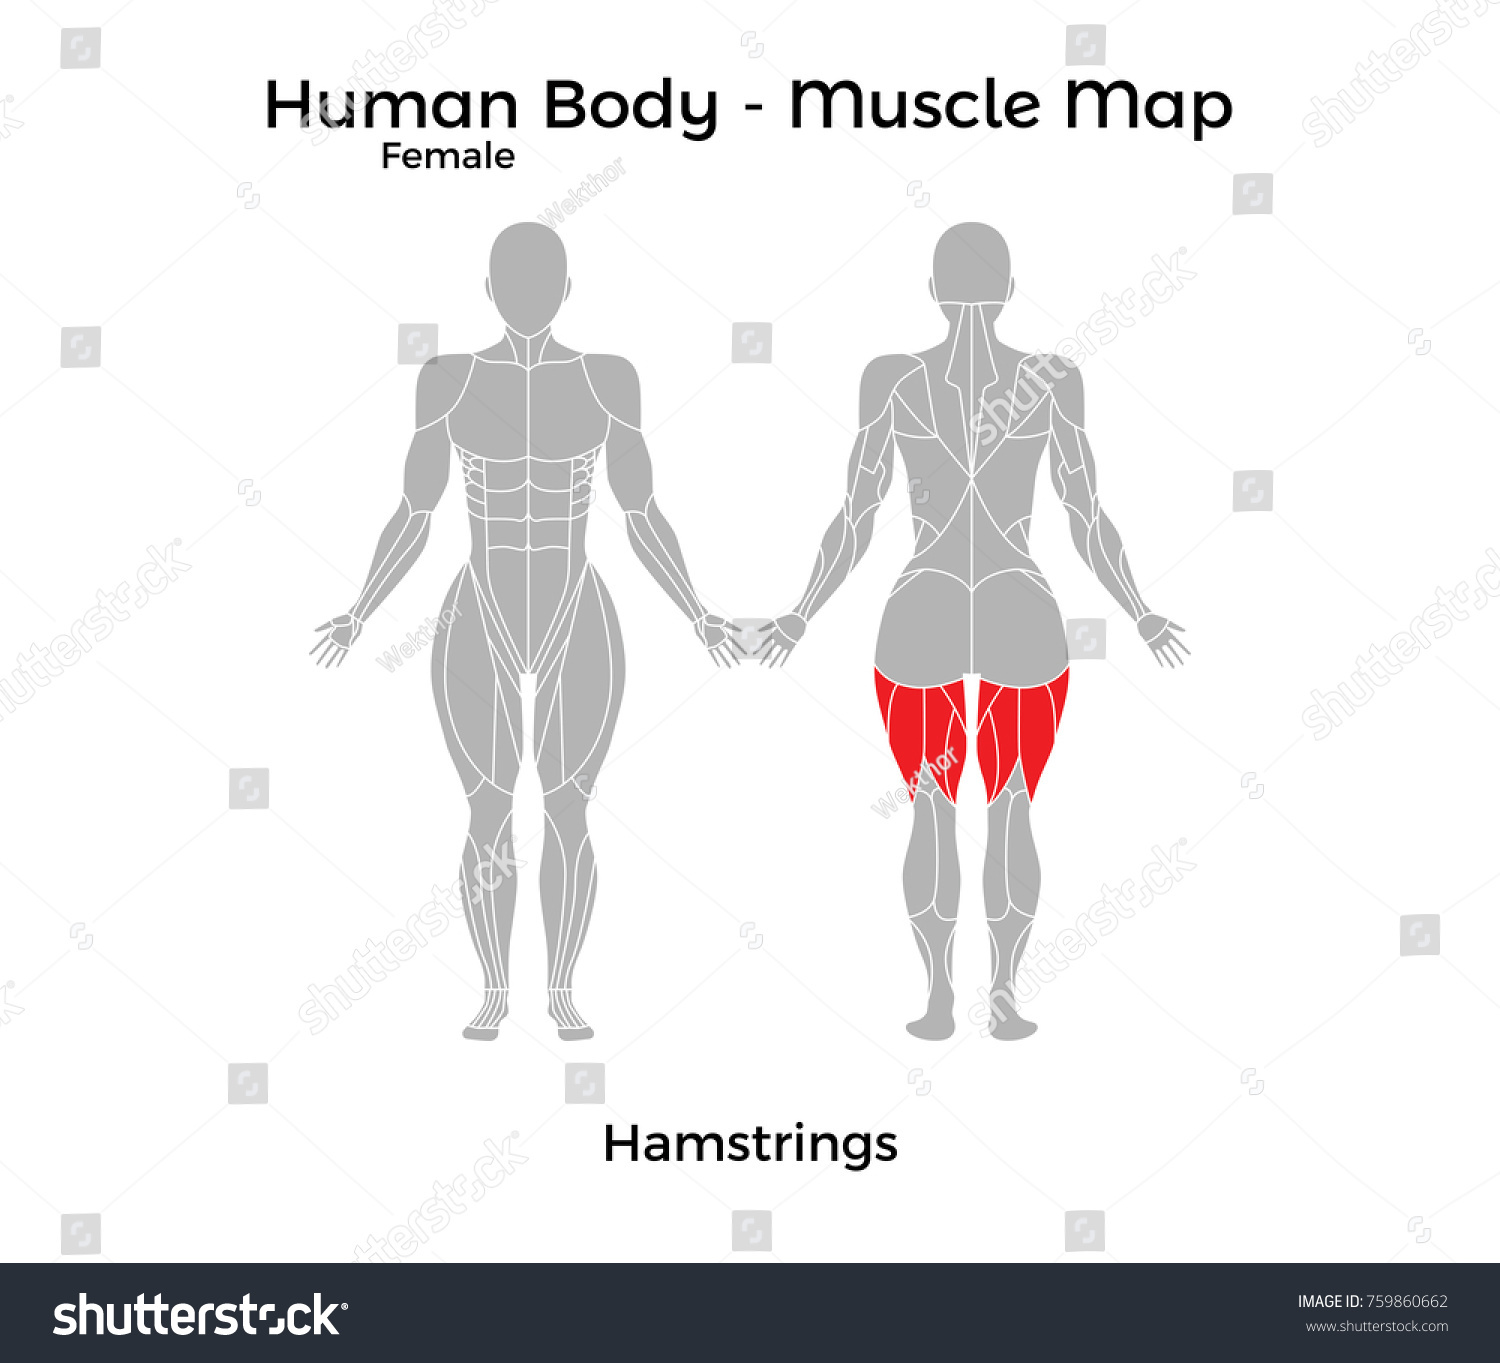 Female human body muscle map hamstrings stock vector 759860662 female human body muscle map hamstrings vector illustration eps10 pooptronica